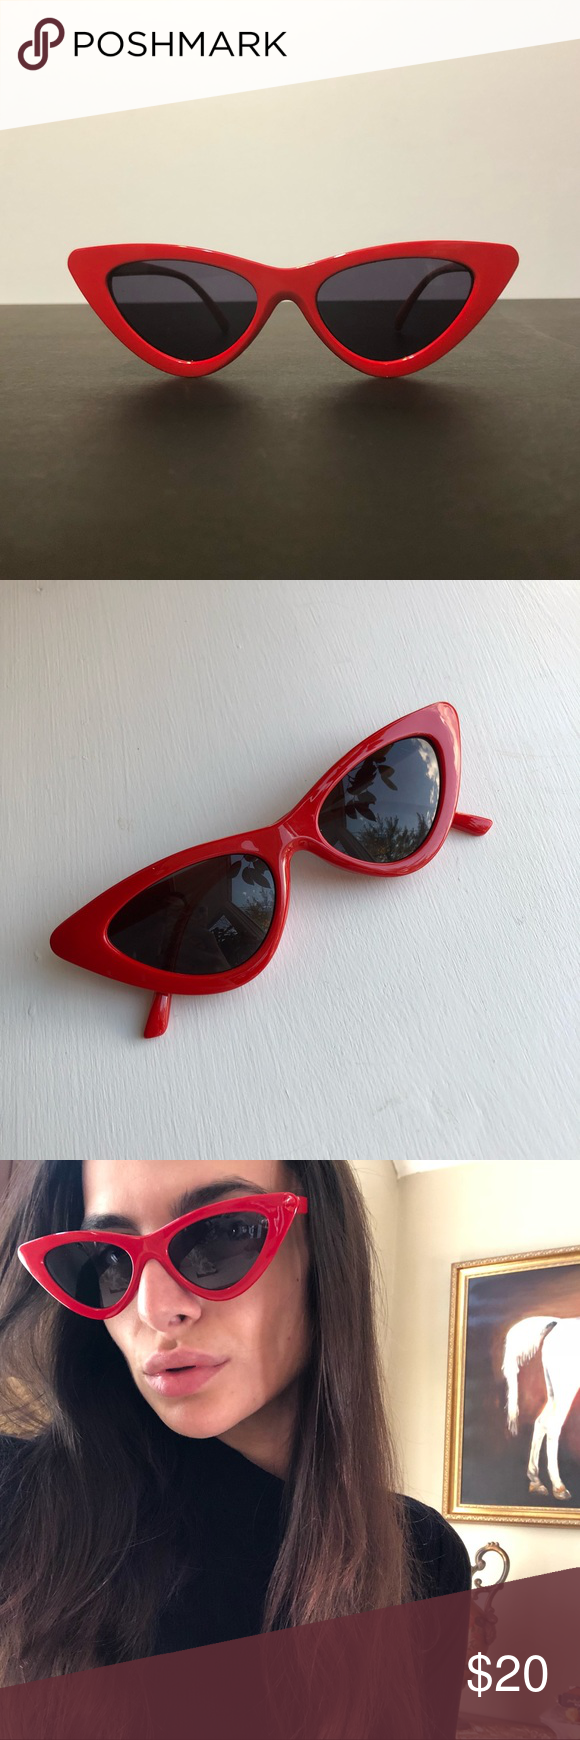 b73b1c5a57 Retro Triangle Cat Eye Sunglasses retro triangle vintage sunglasses • cat  eye red frame • black